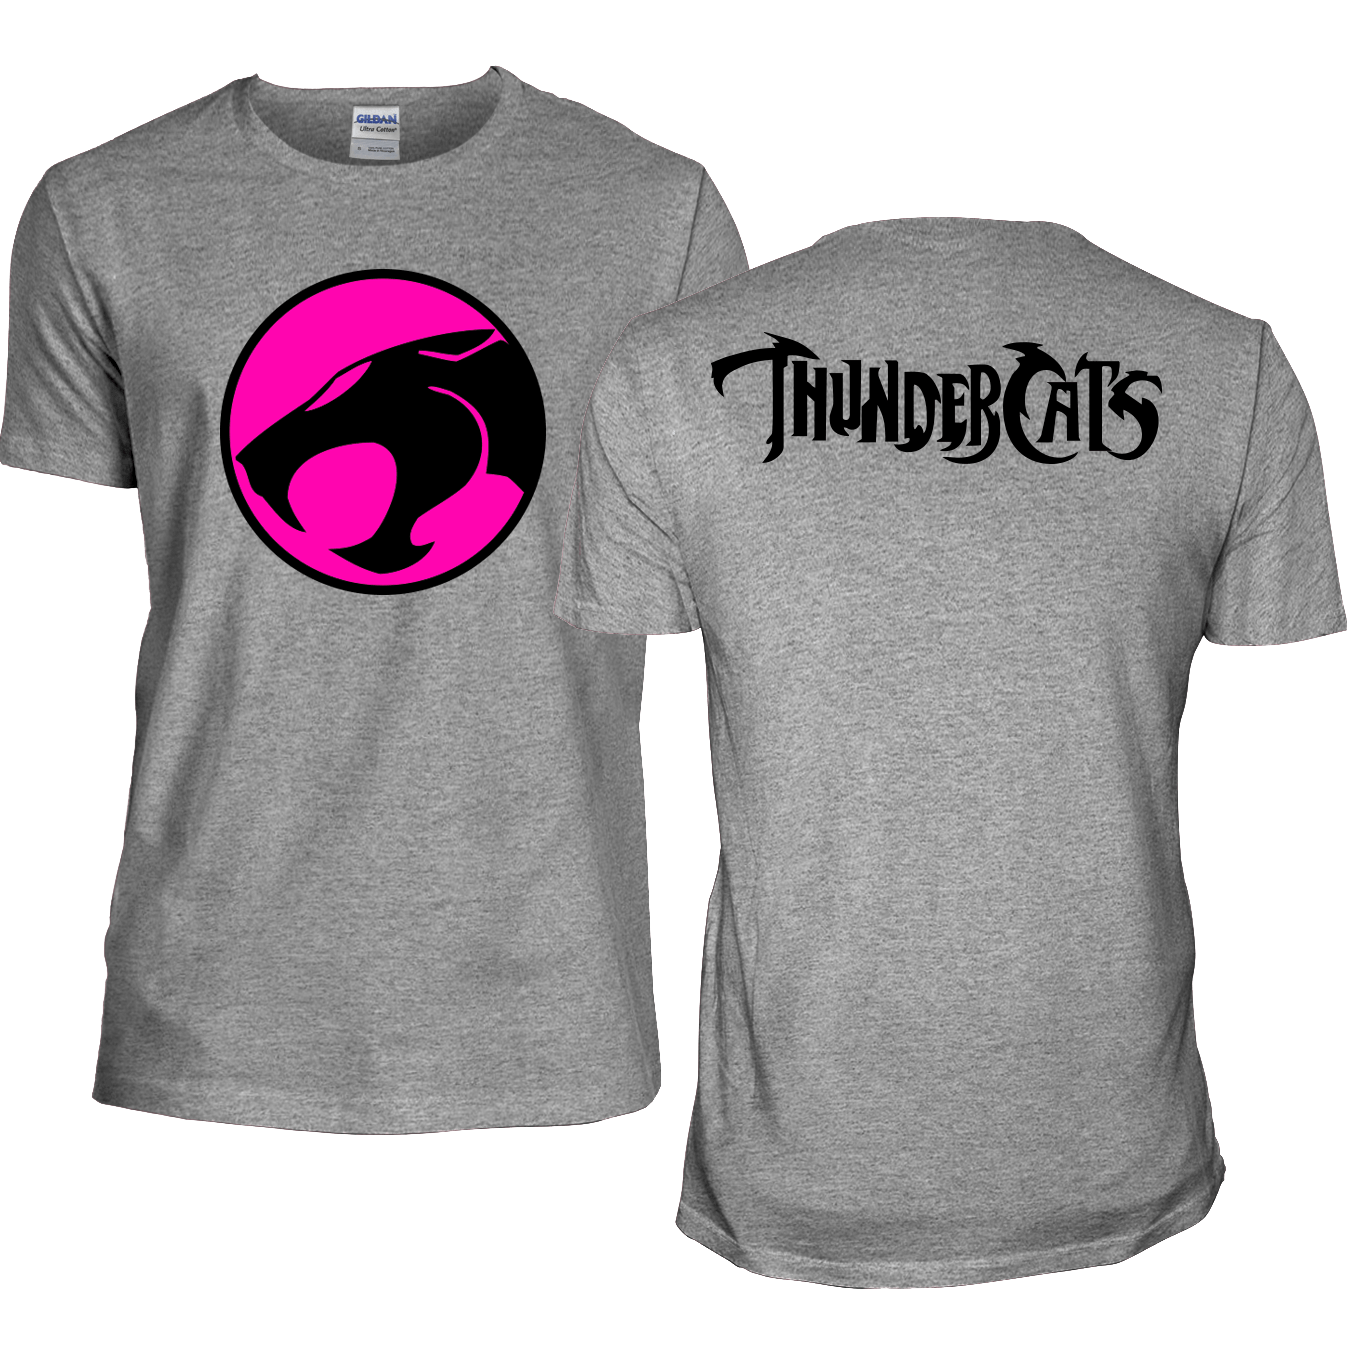 thundercats-jerseys-gray-cropped